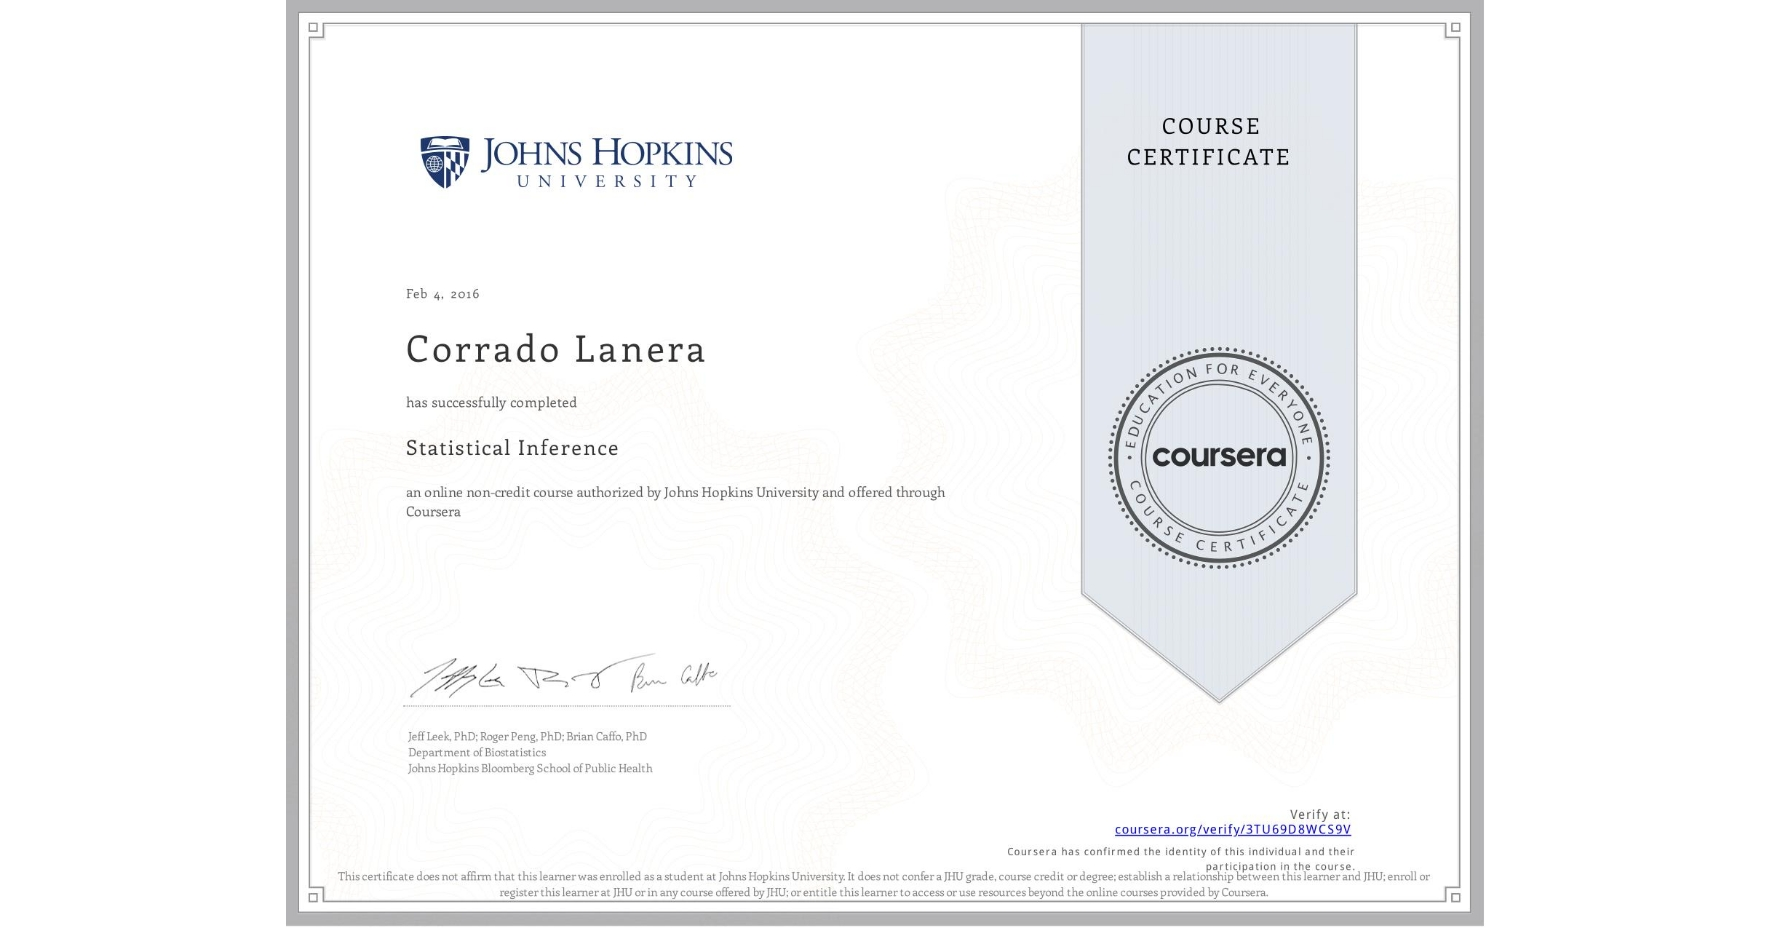 View certificate for Corrado Lanera, Statistical Inference, an online non-credit course authorized by Johns Hopkins University and offered through Coursera